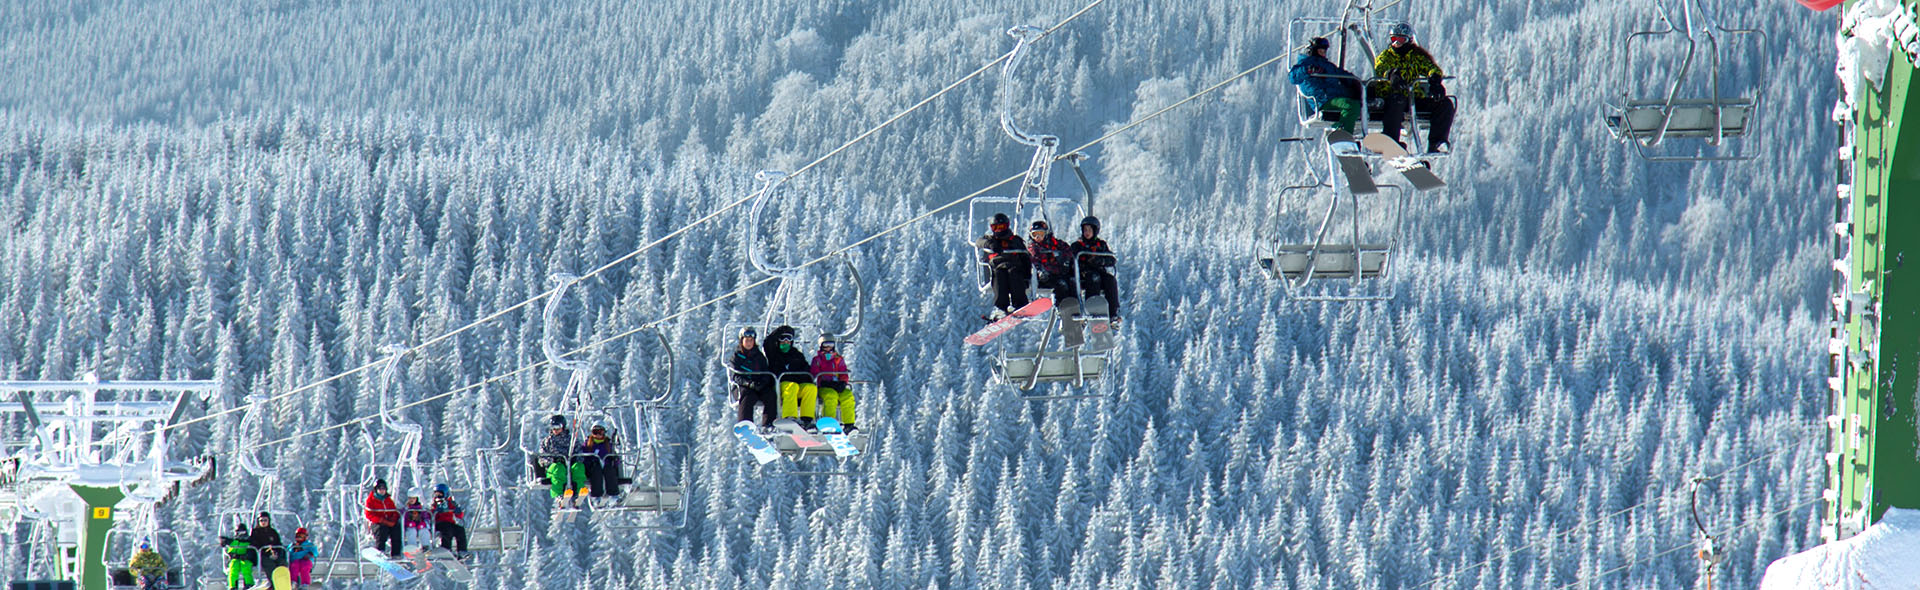 Cable cars and ski lifts